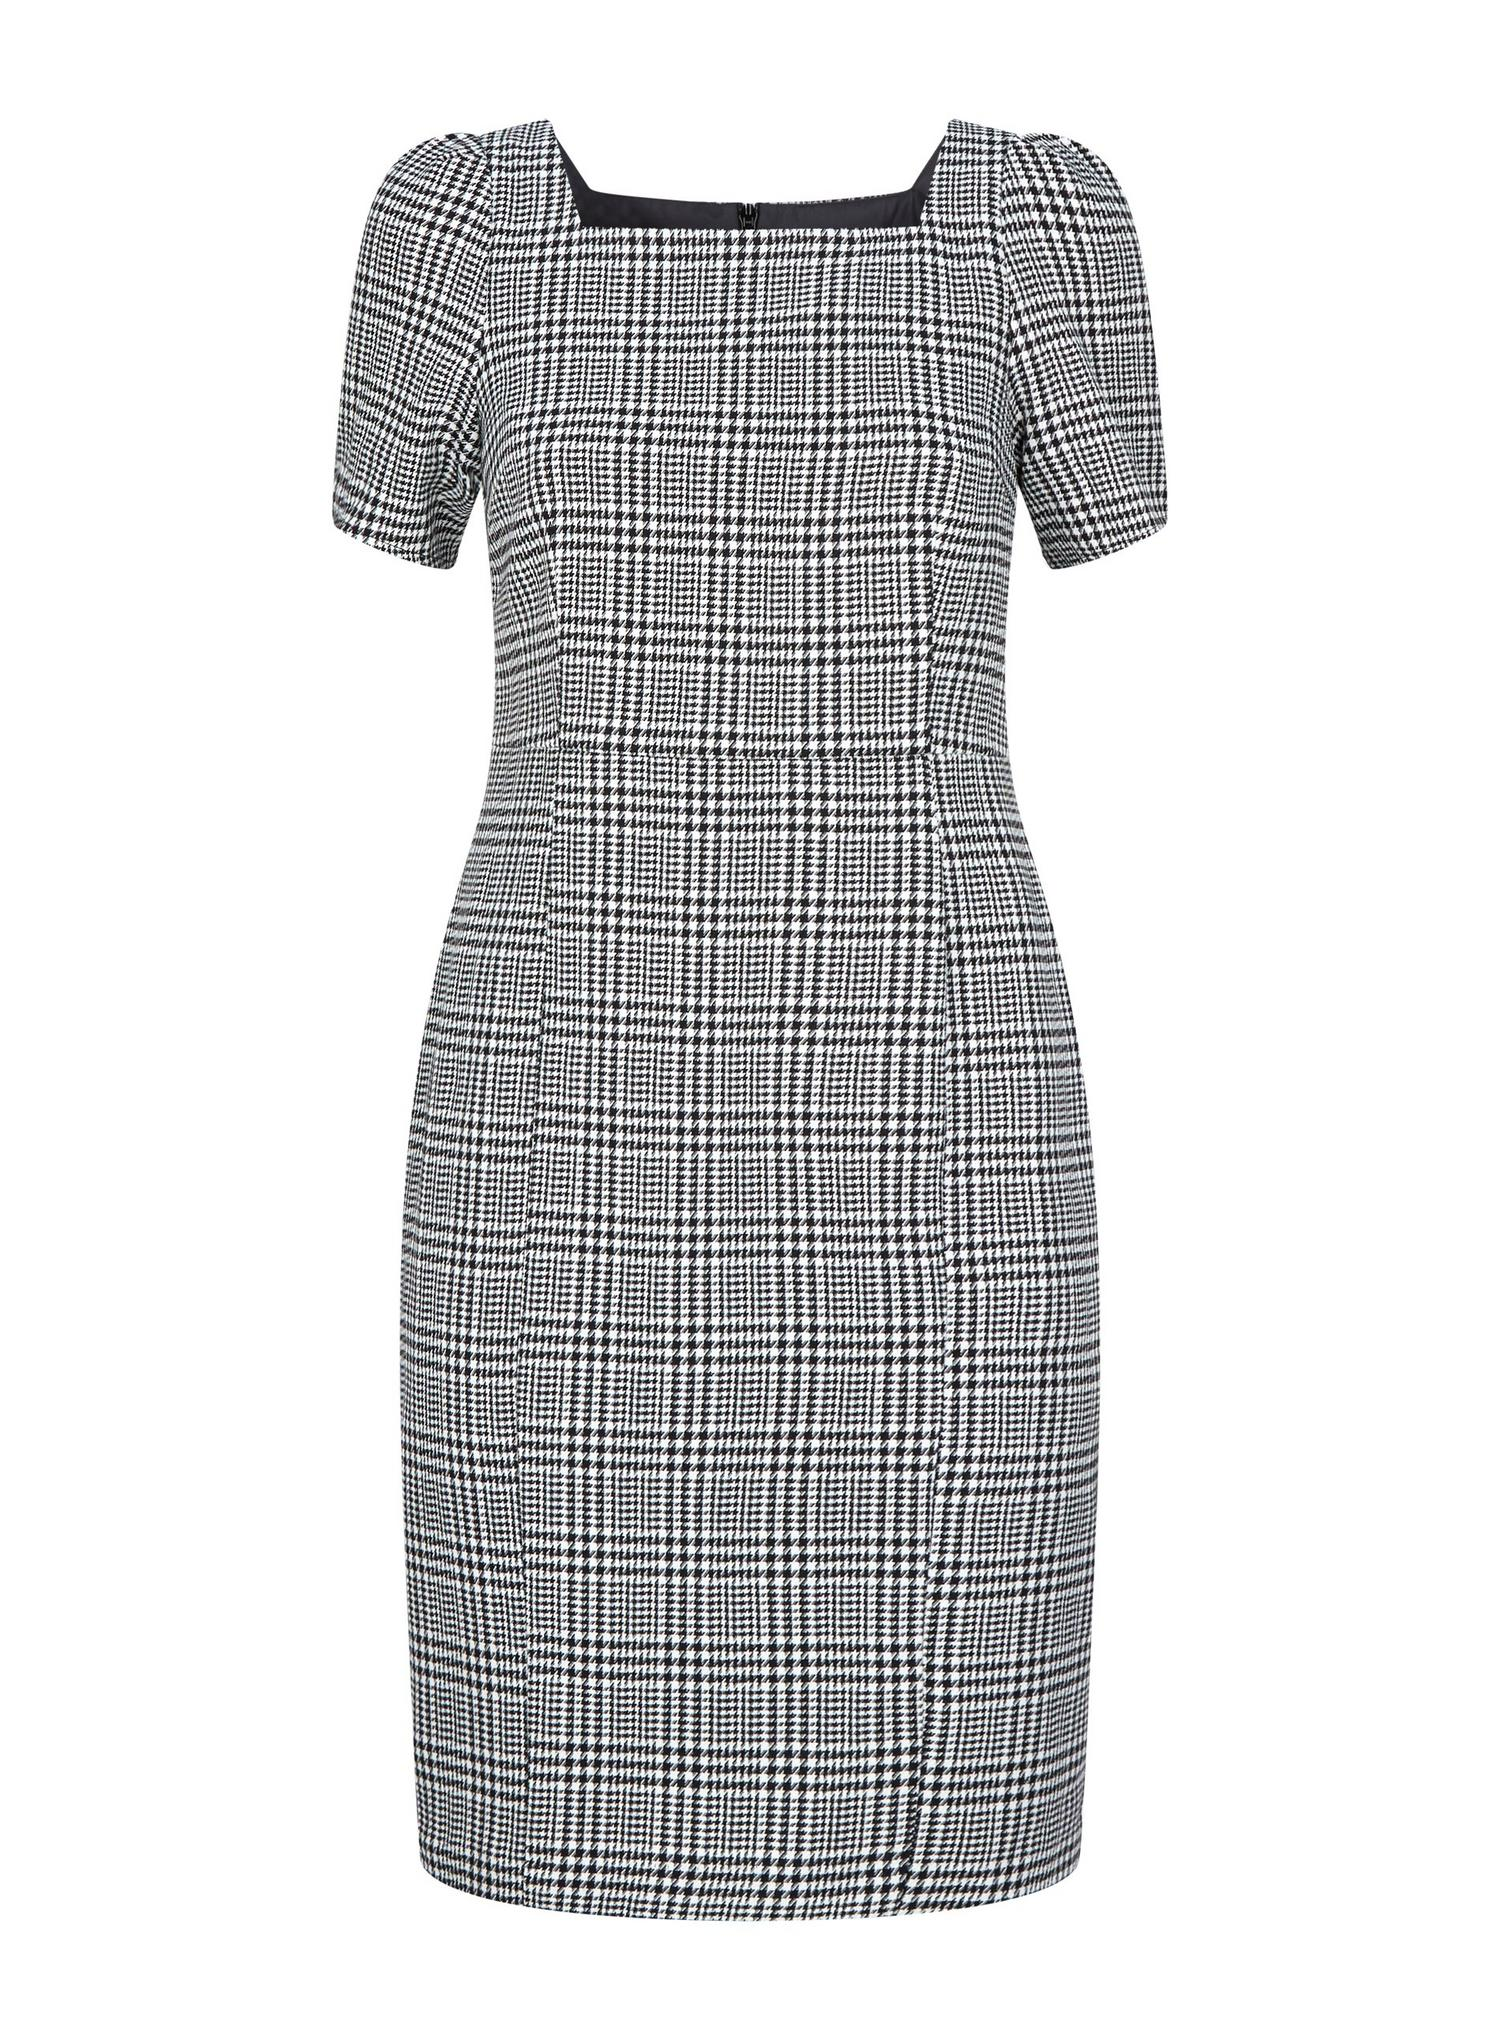 105 Petite Black Check Print Square Neck Dress image number 4